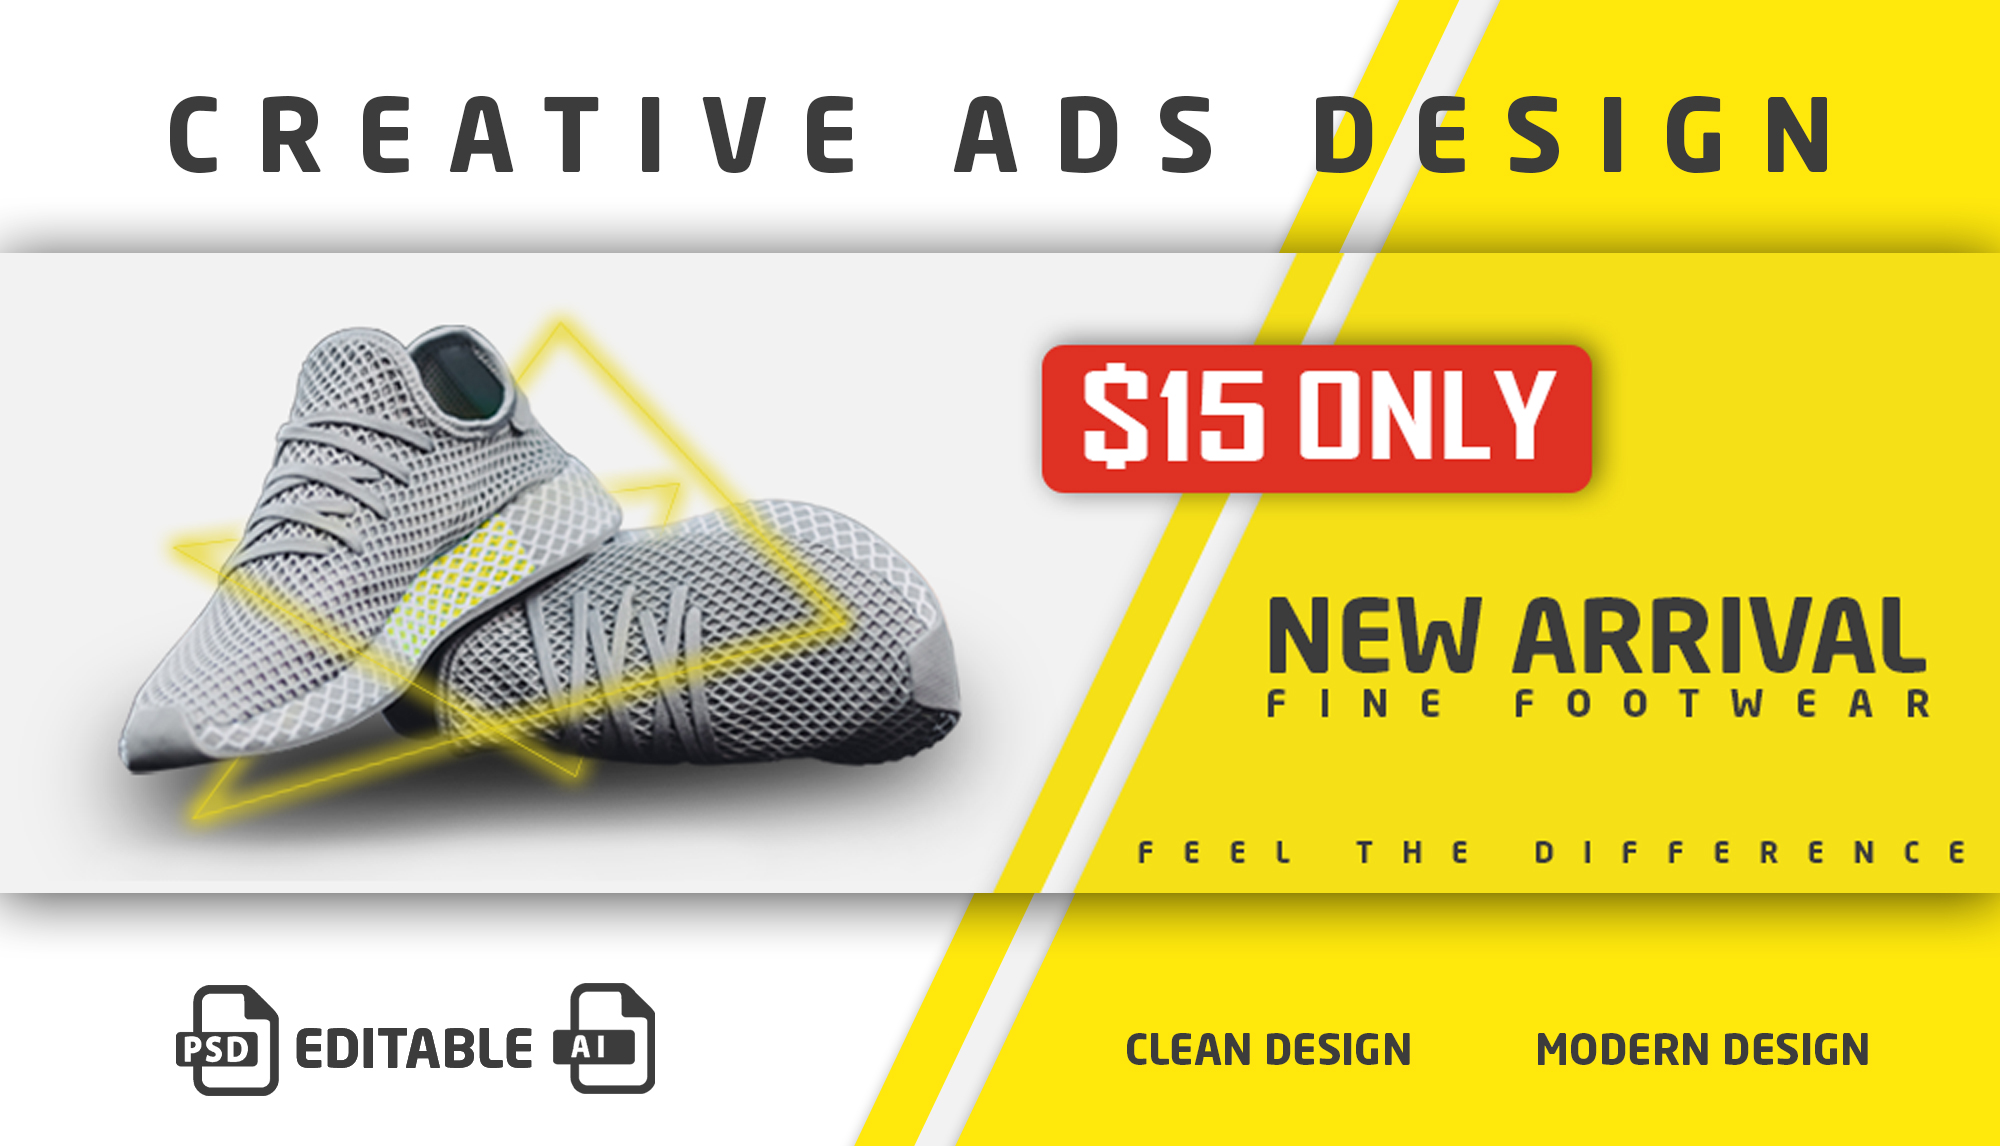 I will design eye catchy ads for your business or social media